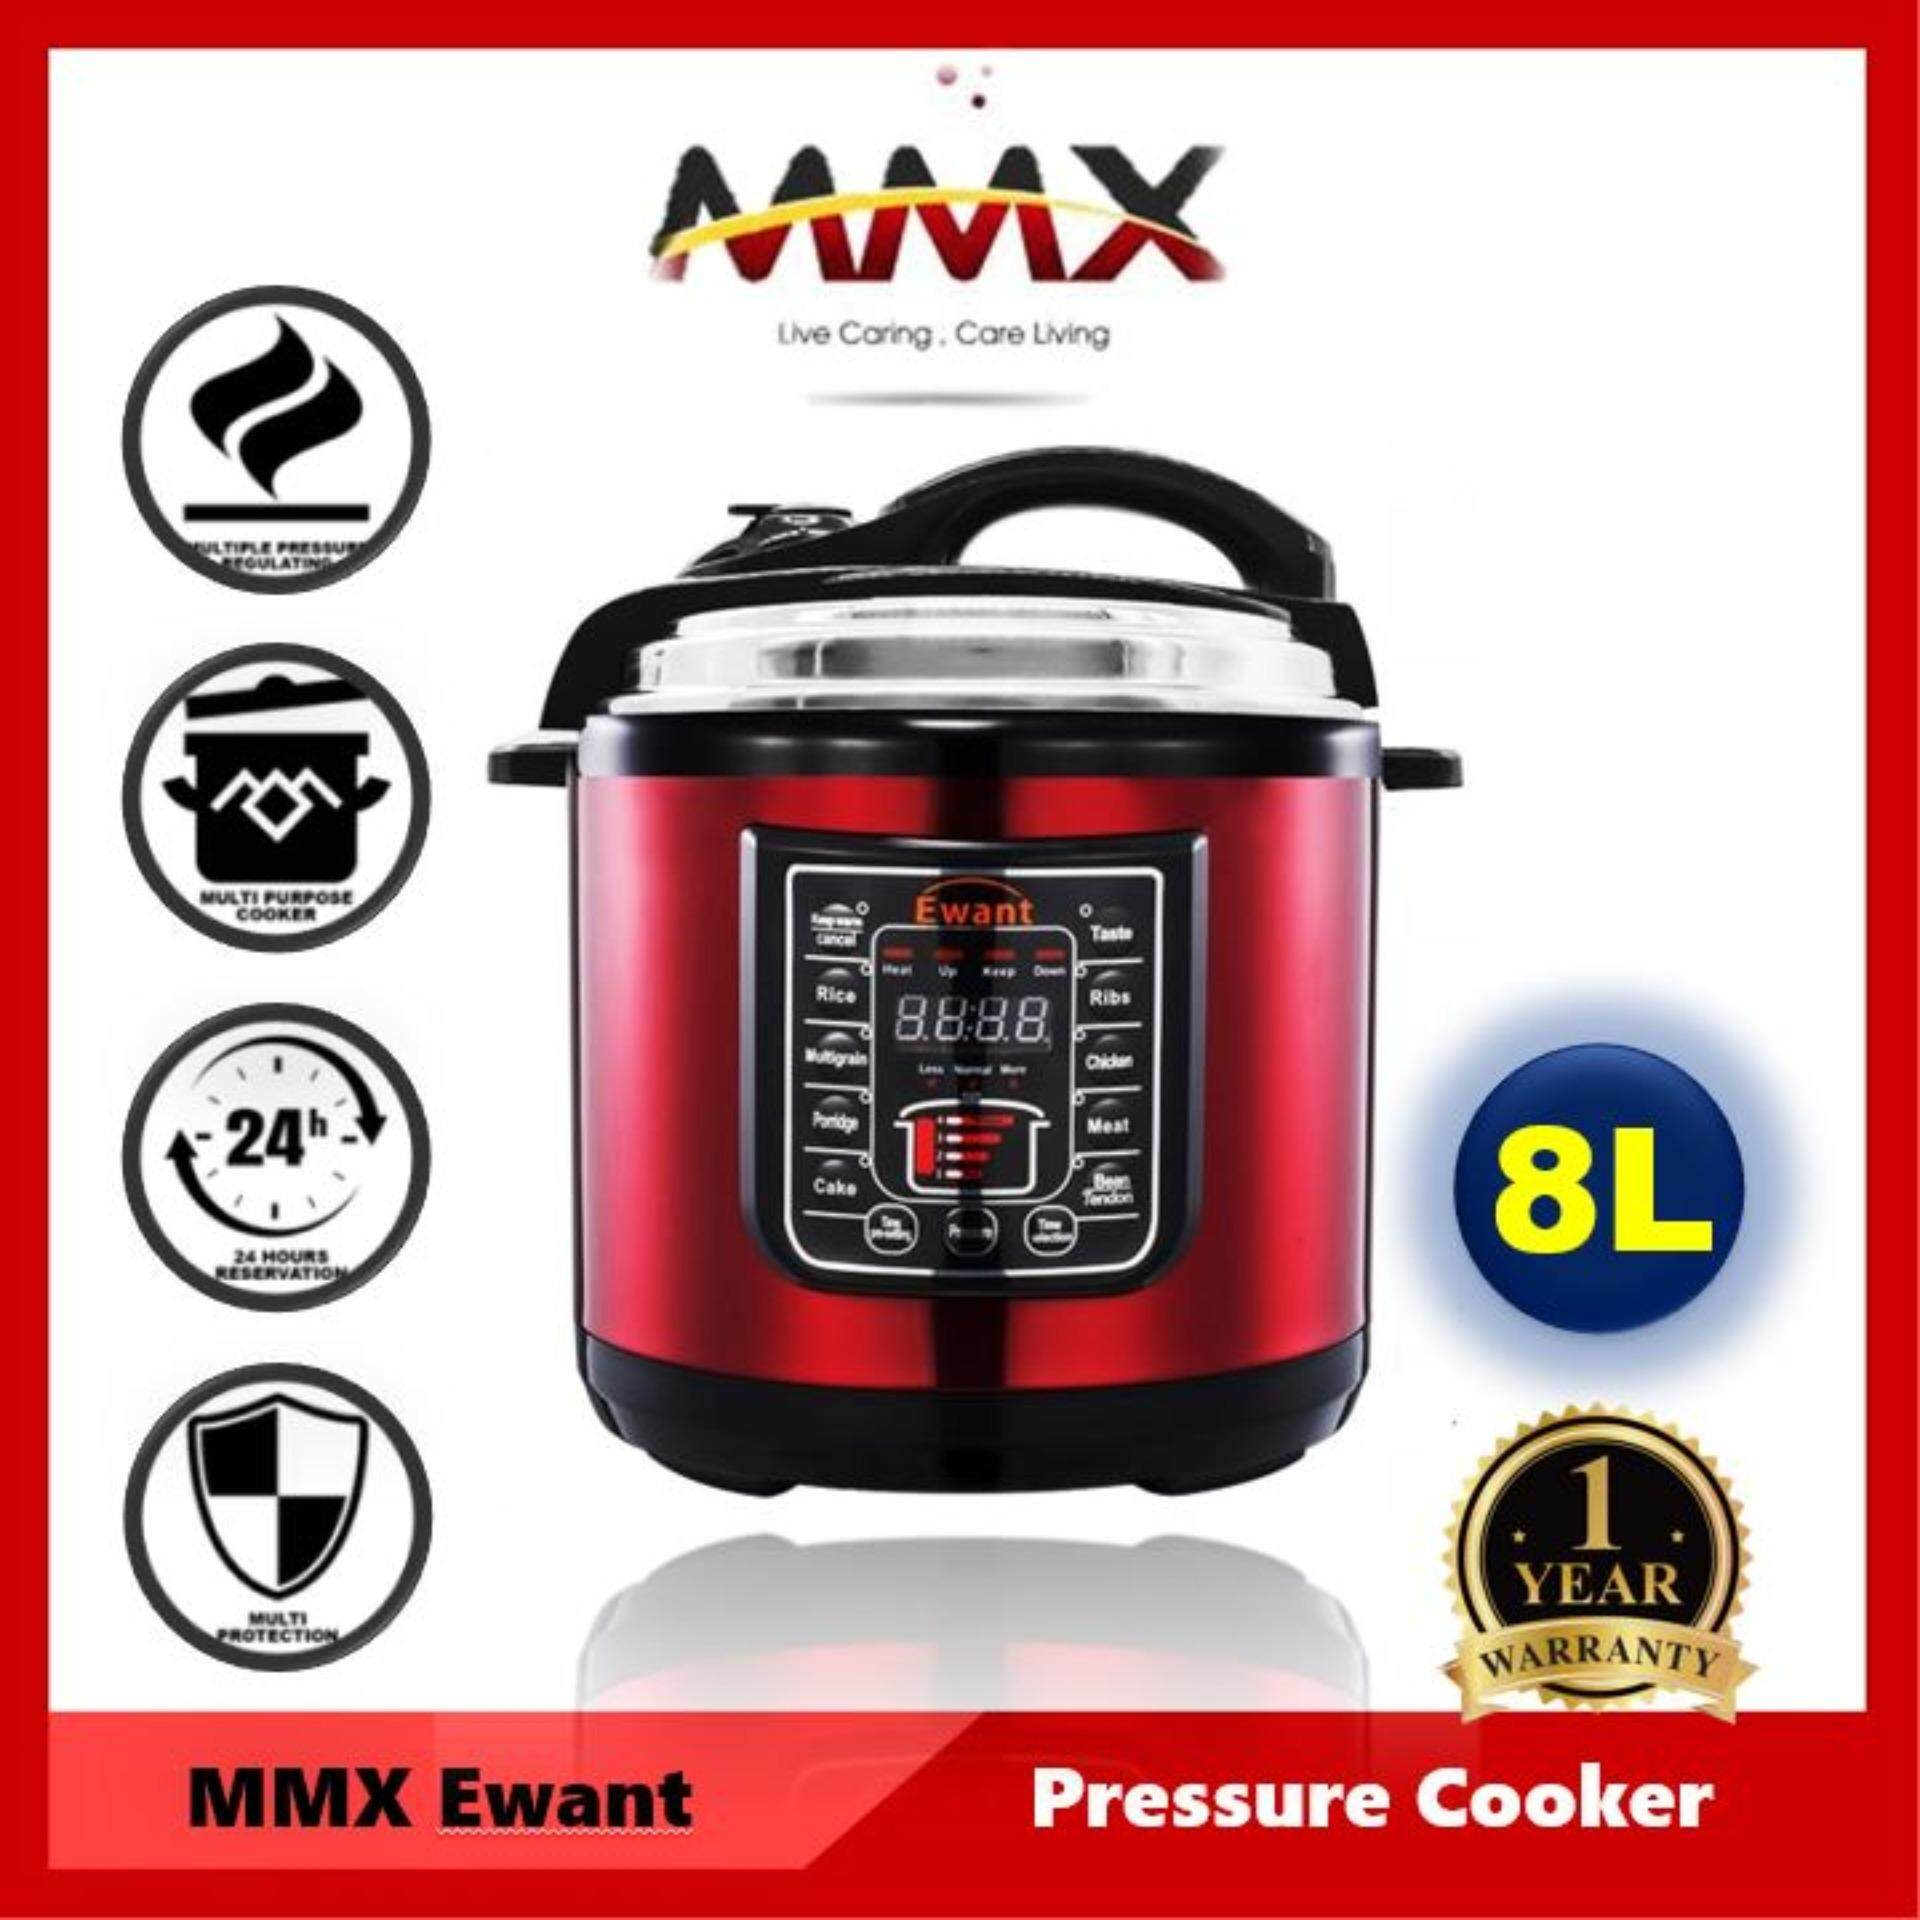 MMX - Ewant 8L Multi-Functional Electric Pressure Cooker (YBD6-100 8-in-1 with Malaysia Plug)